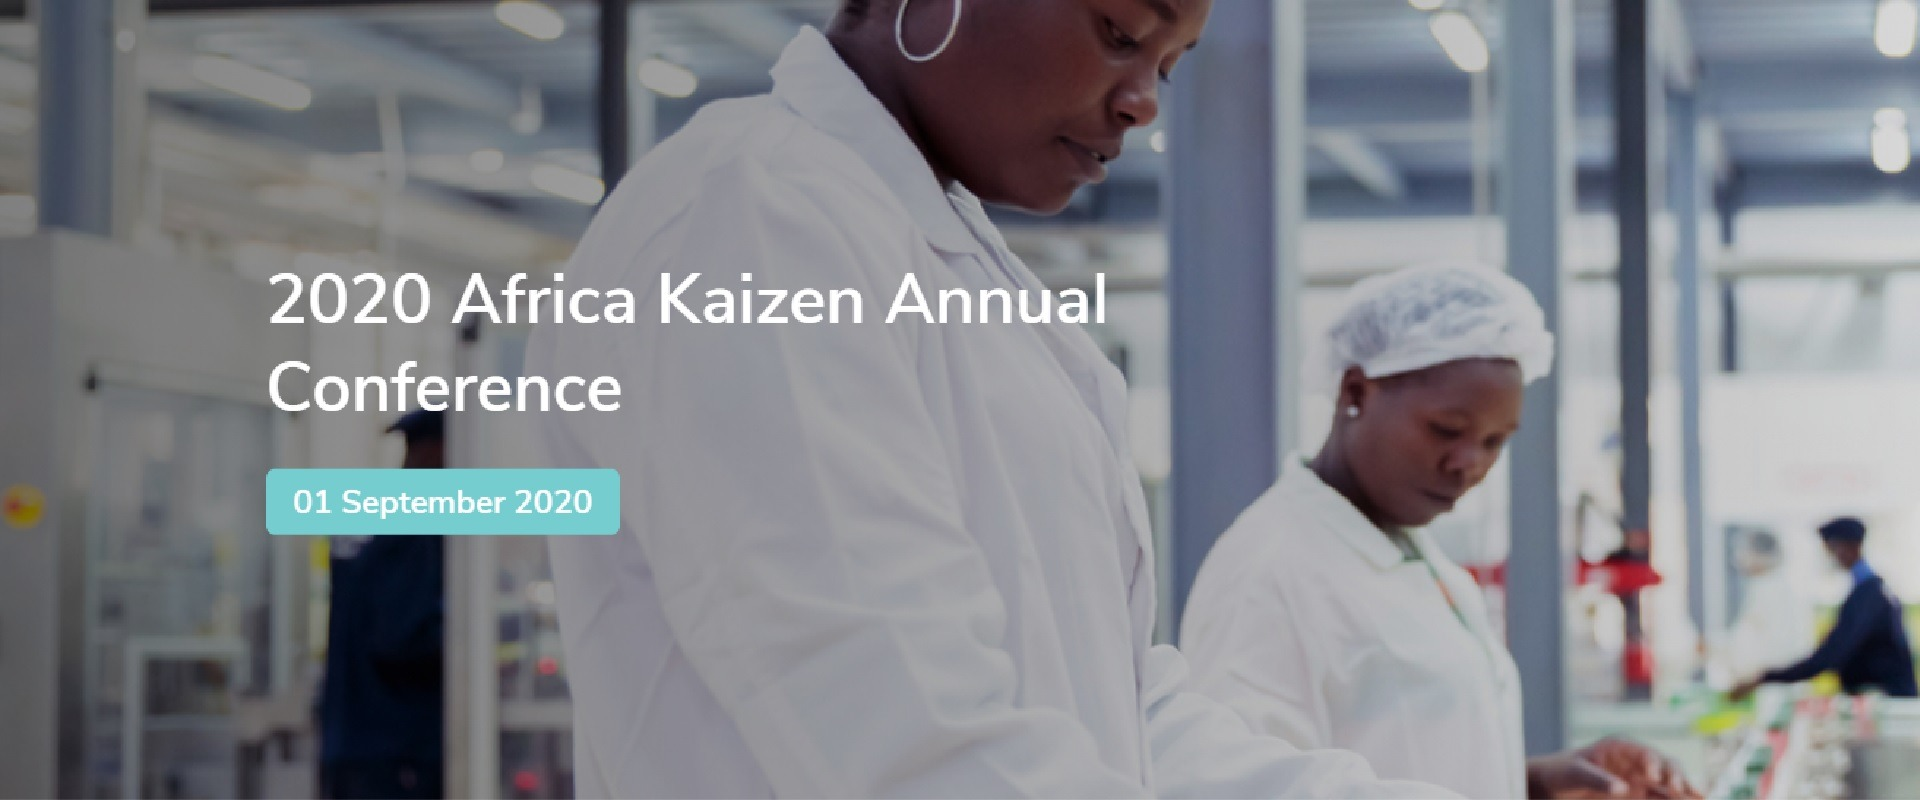 Natec Medical Ltd and SSS Furniture distinguished at African Kaizen Awards